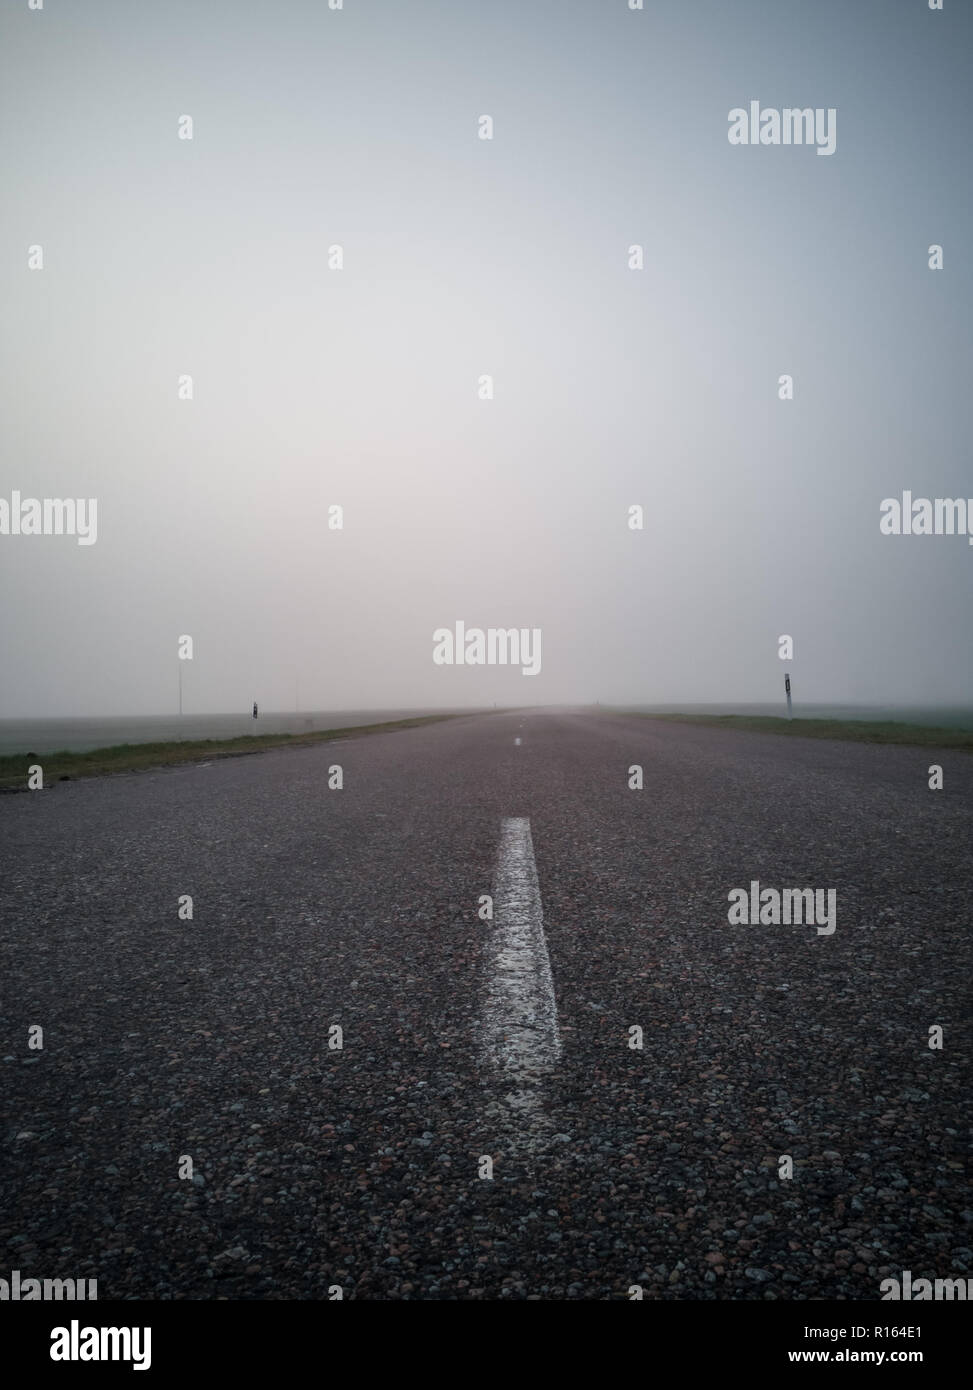 Blurred Road in an Early Morning  with a Heavy Mist Covering the Background and a Sun Shining Through Mist. Moody Photo with a Text Space - Stock Image